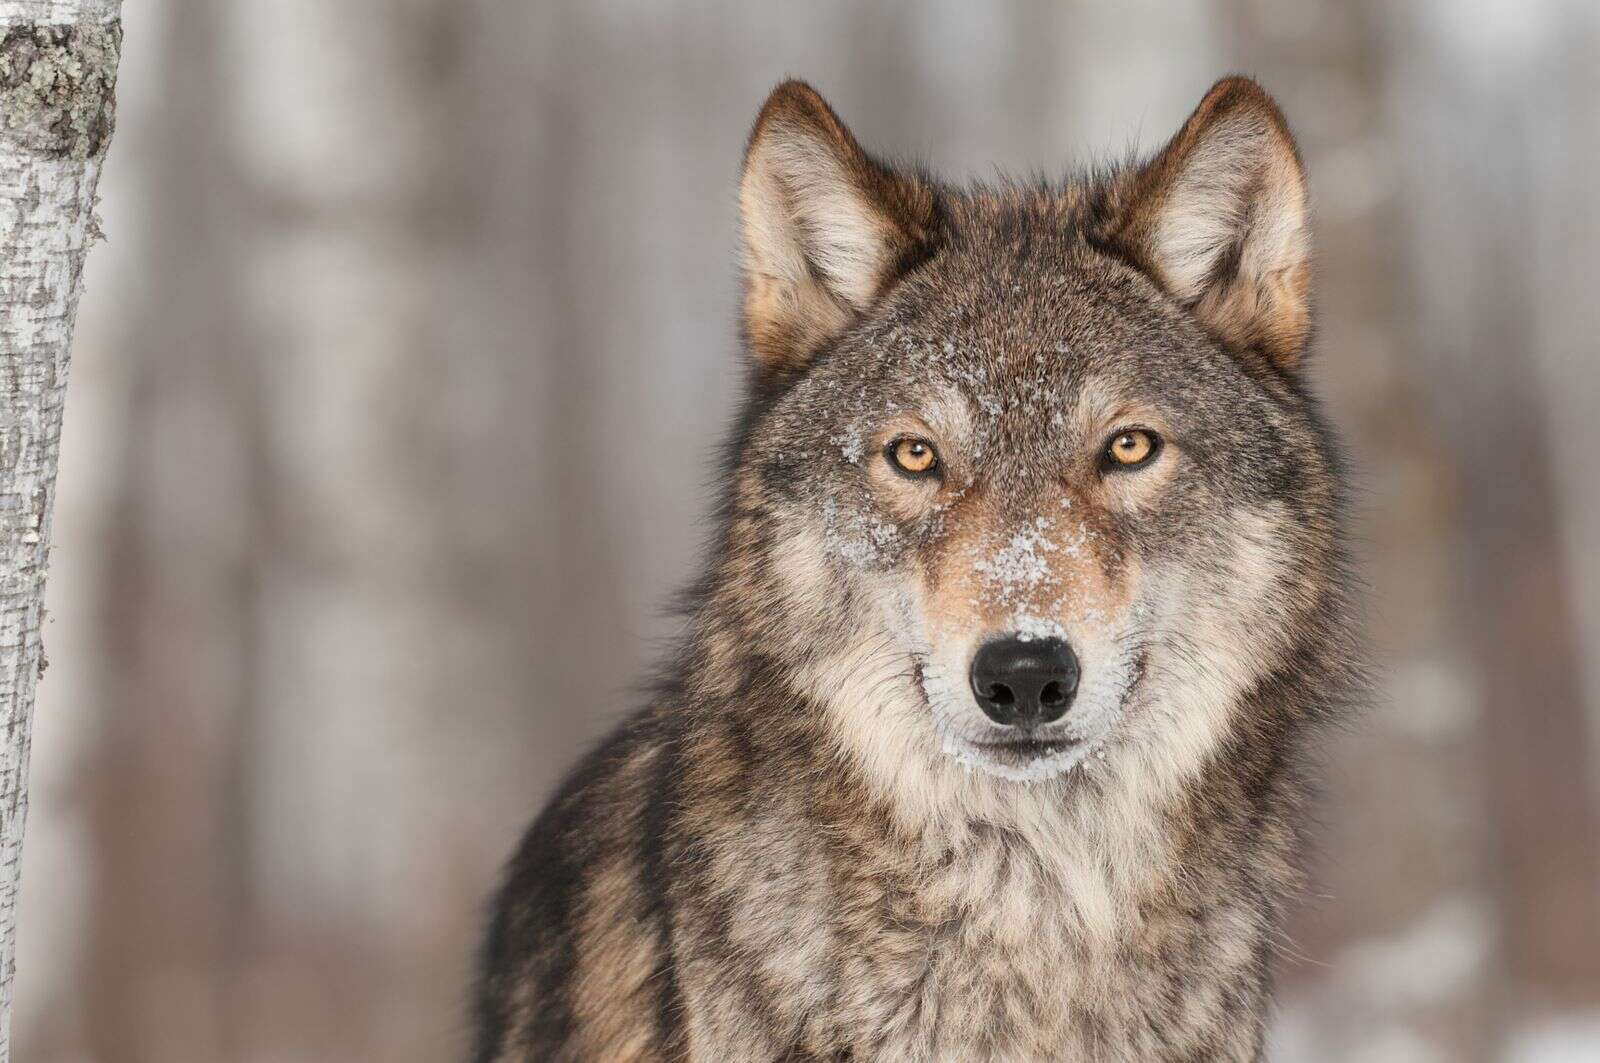 Colorado begins planning to reintroduce gray wolves